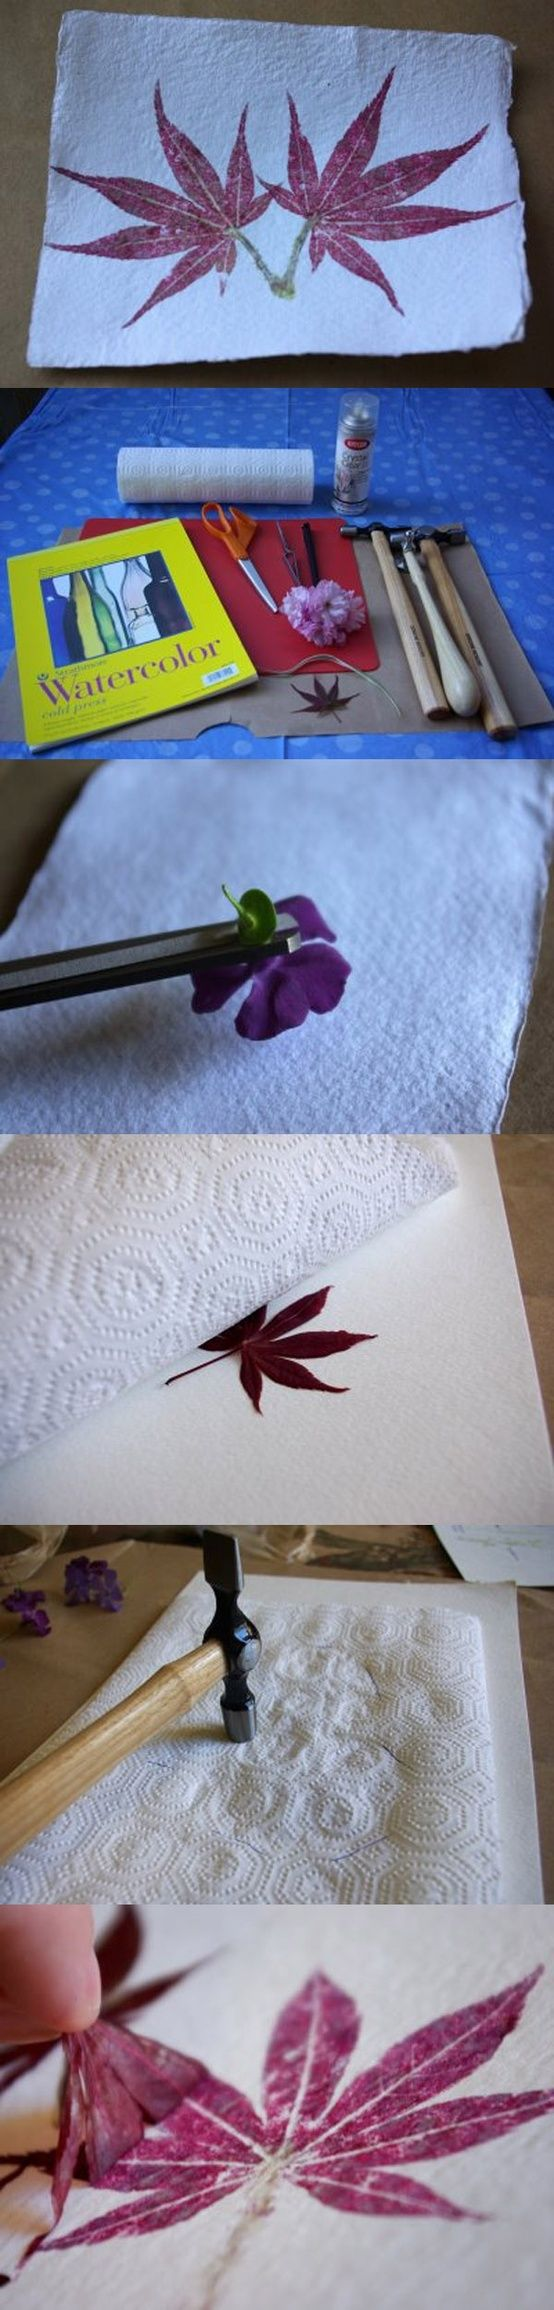 Hammered flower and leaf prints ( flowers or leaves, watercolor paper or other rough paper )-SRC 2013